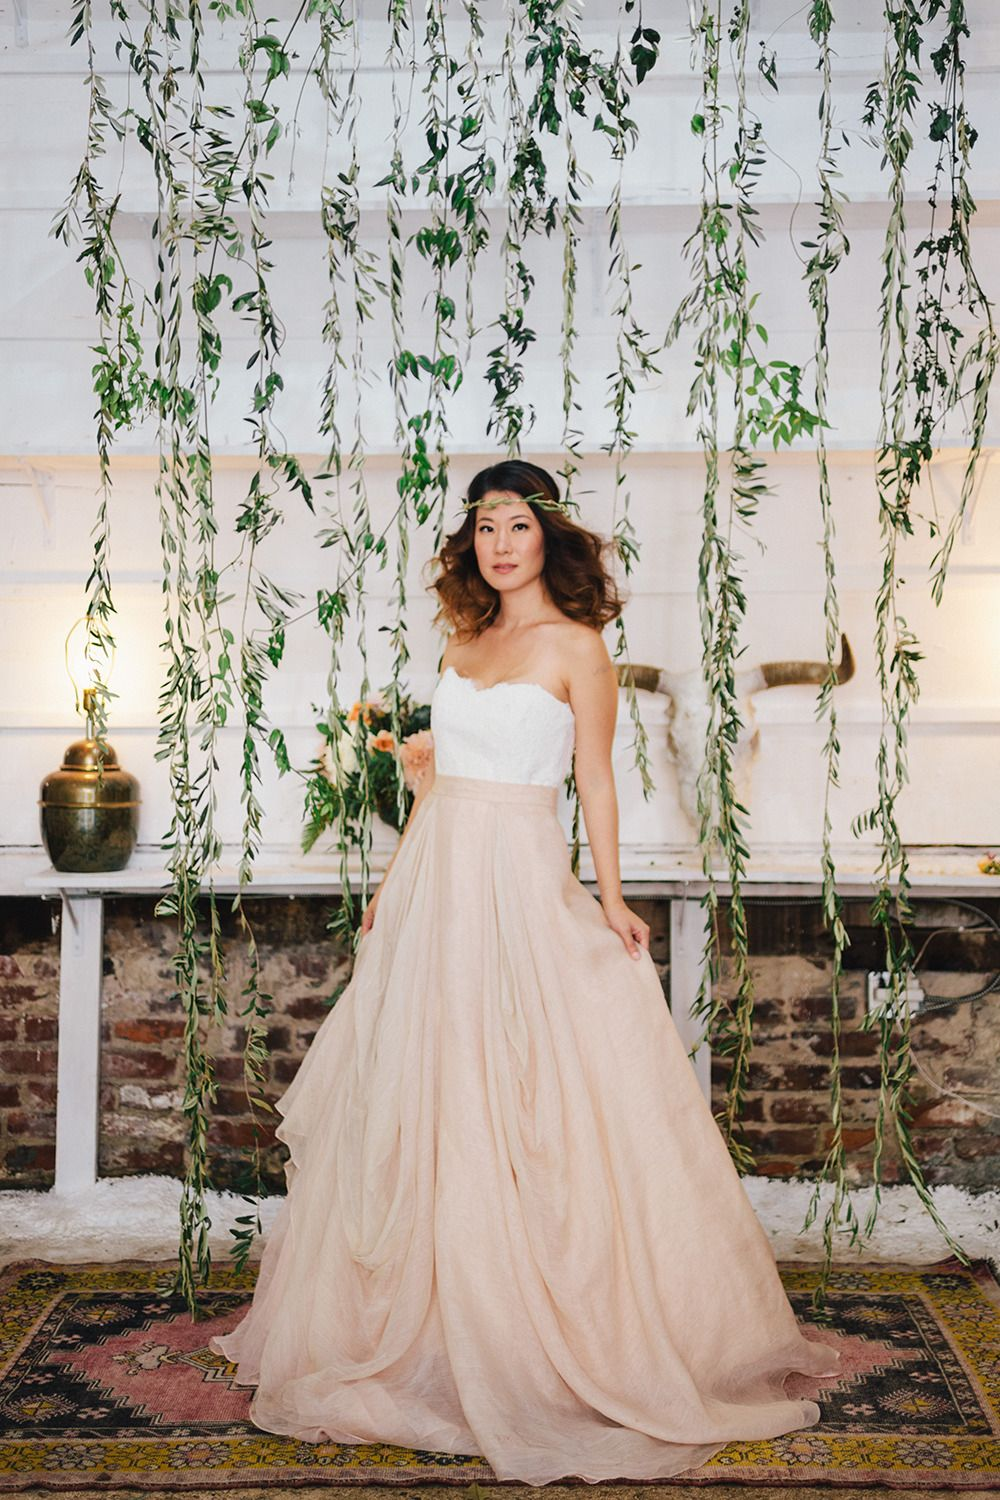 Peach Rustic Boho Wedding Inspiration u Bridal Dresses